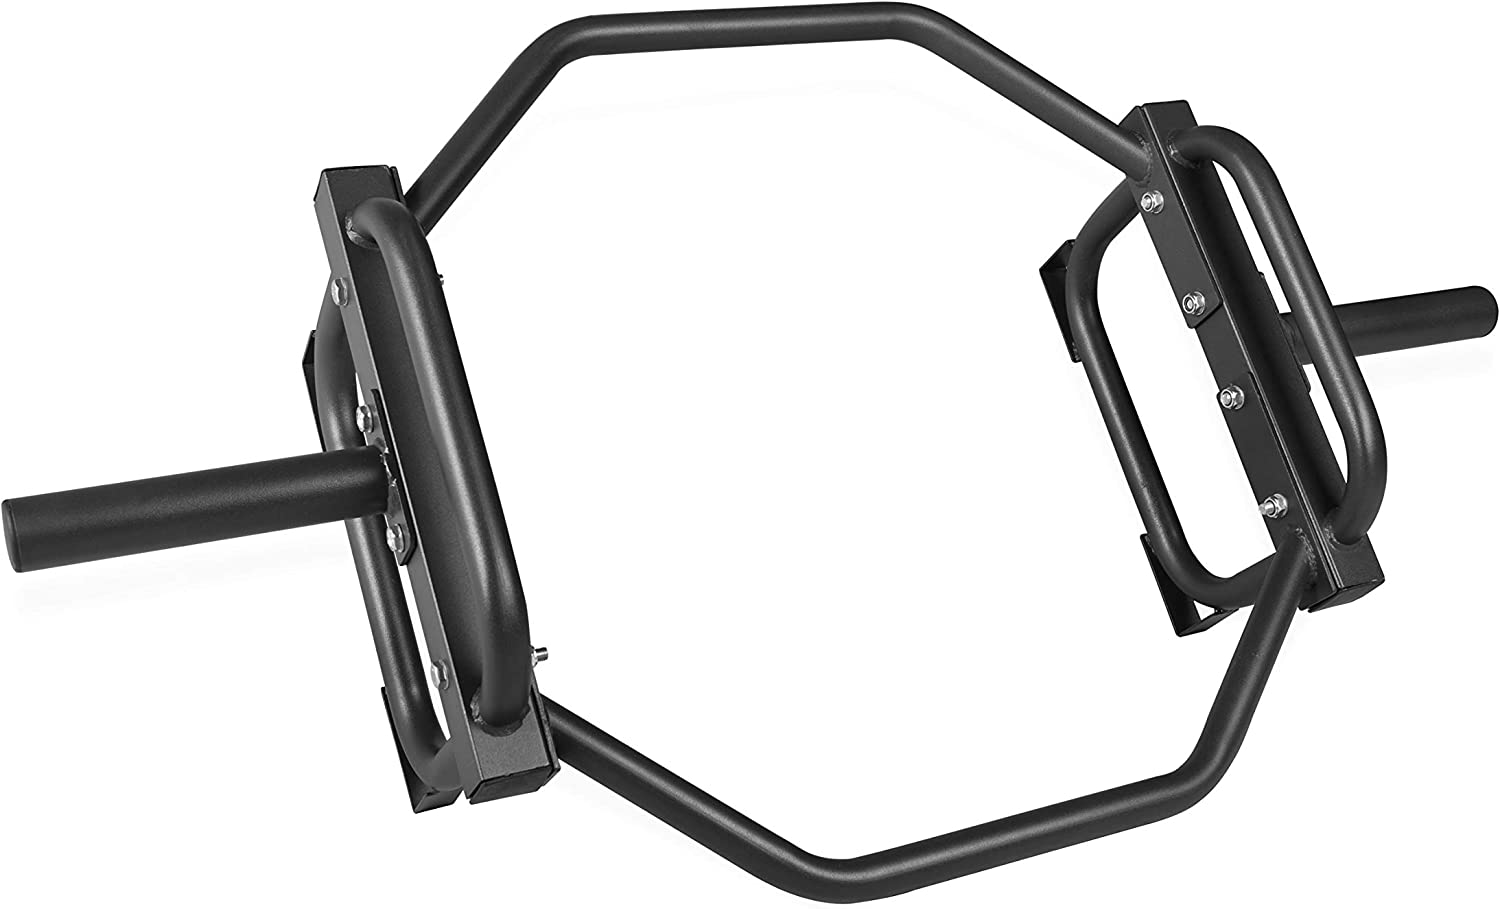 CAP Barbell Olympic Trap Bar, Hex Bar, Shrug Bar, Deadlift Bar, Black : Sports & Outdoors